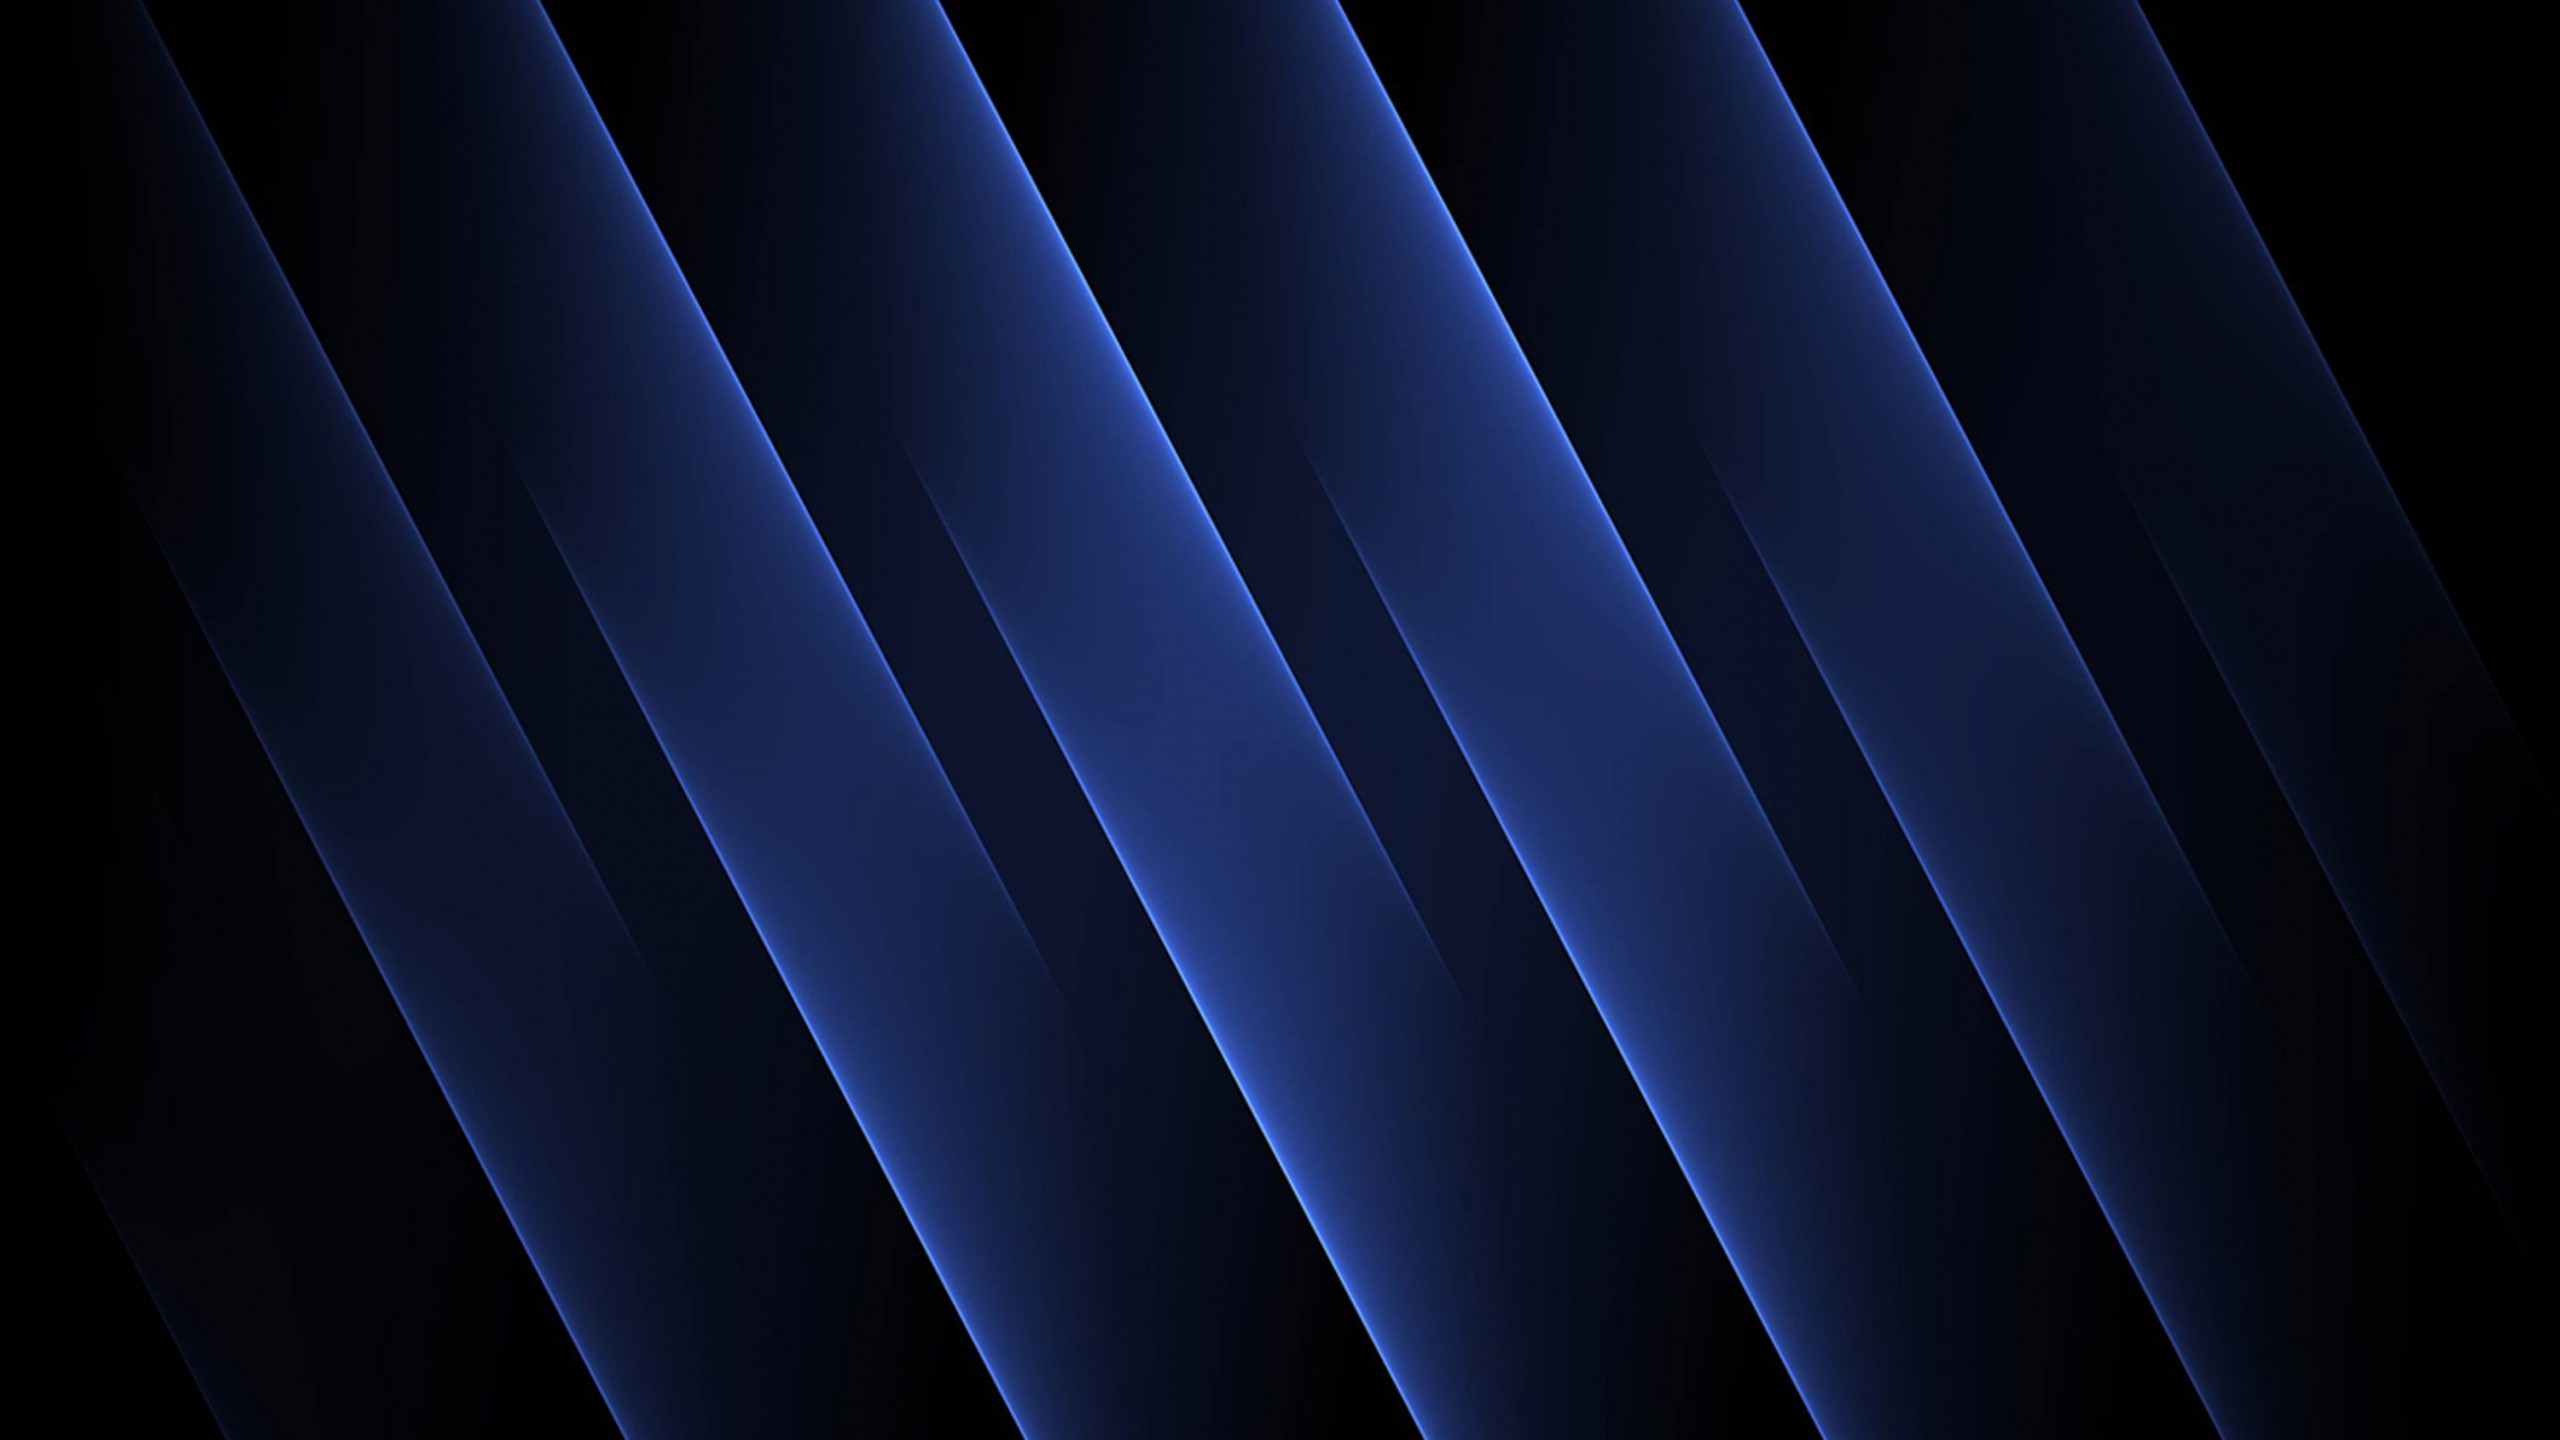 Cute Iphone 8 Wallpaper Blue Stripes Wallpapers Hd Wallpapers Id 25343